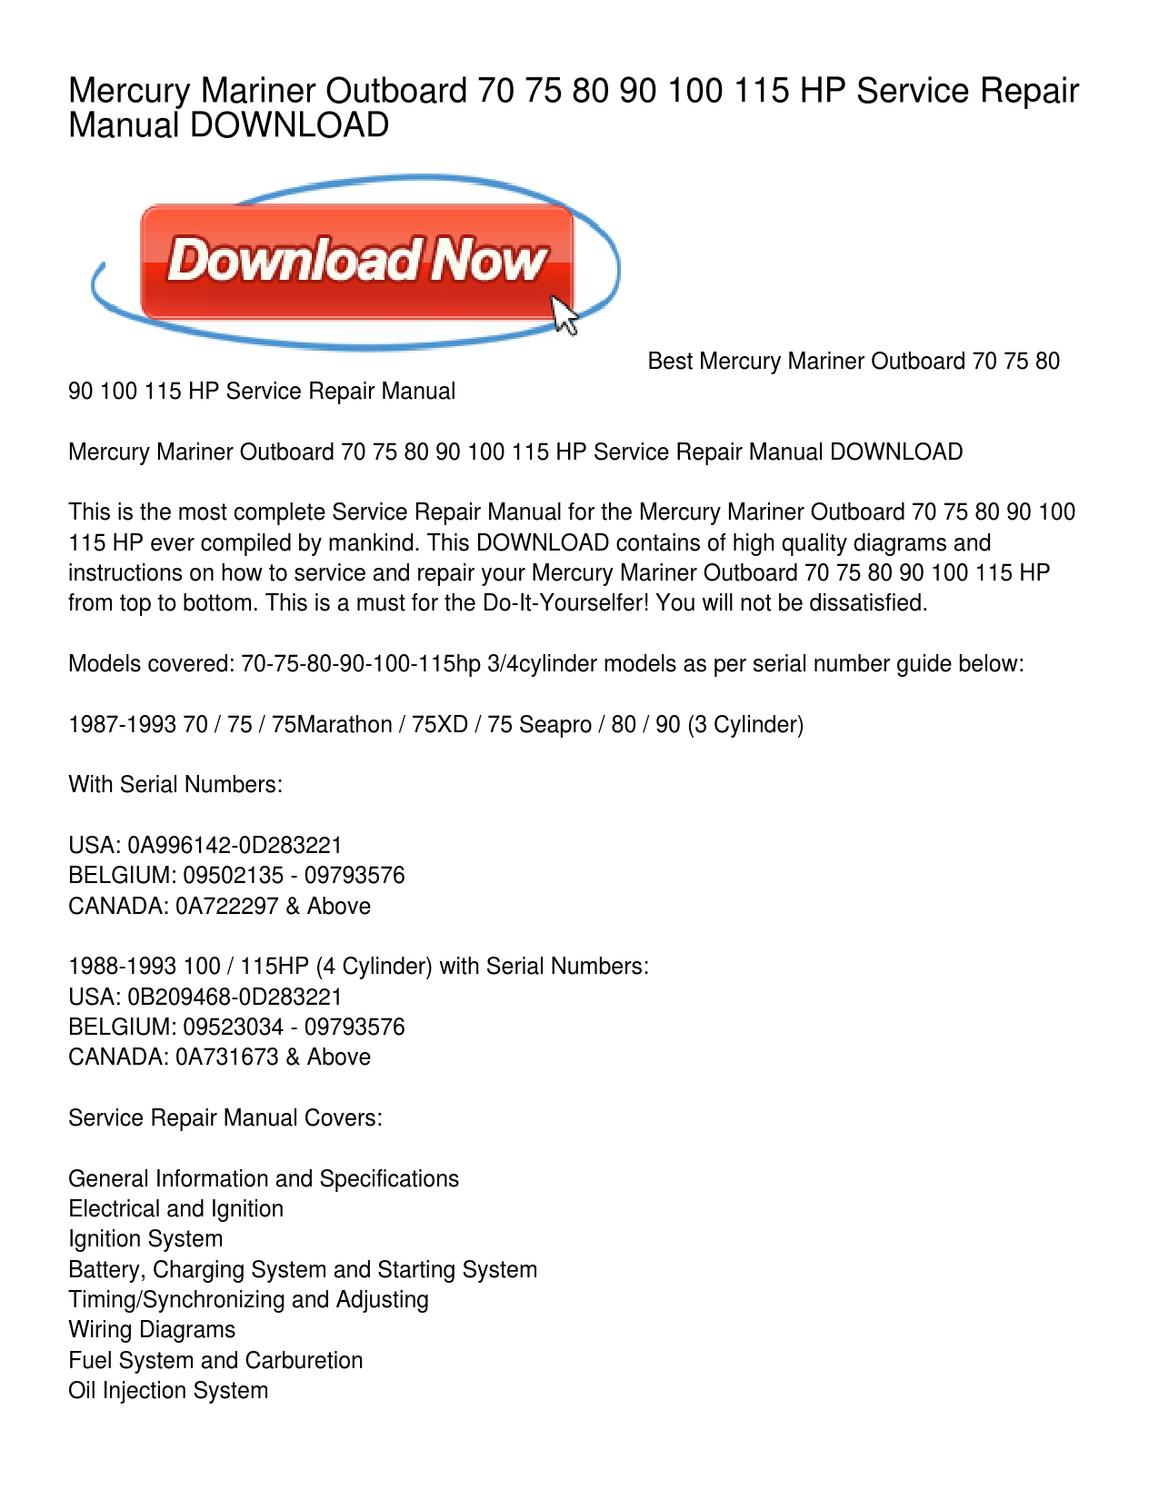 hight resolution of mercury mariner outboard 70 75 80 90 100 115 hp service repair manual download by joan head issuu